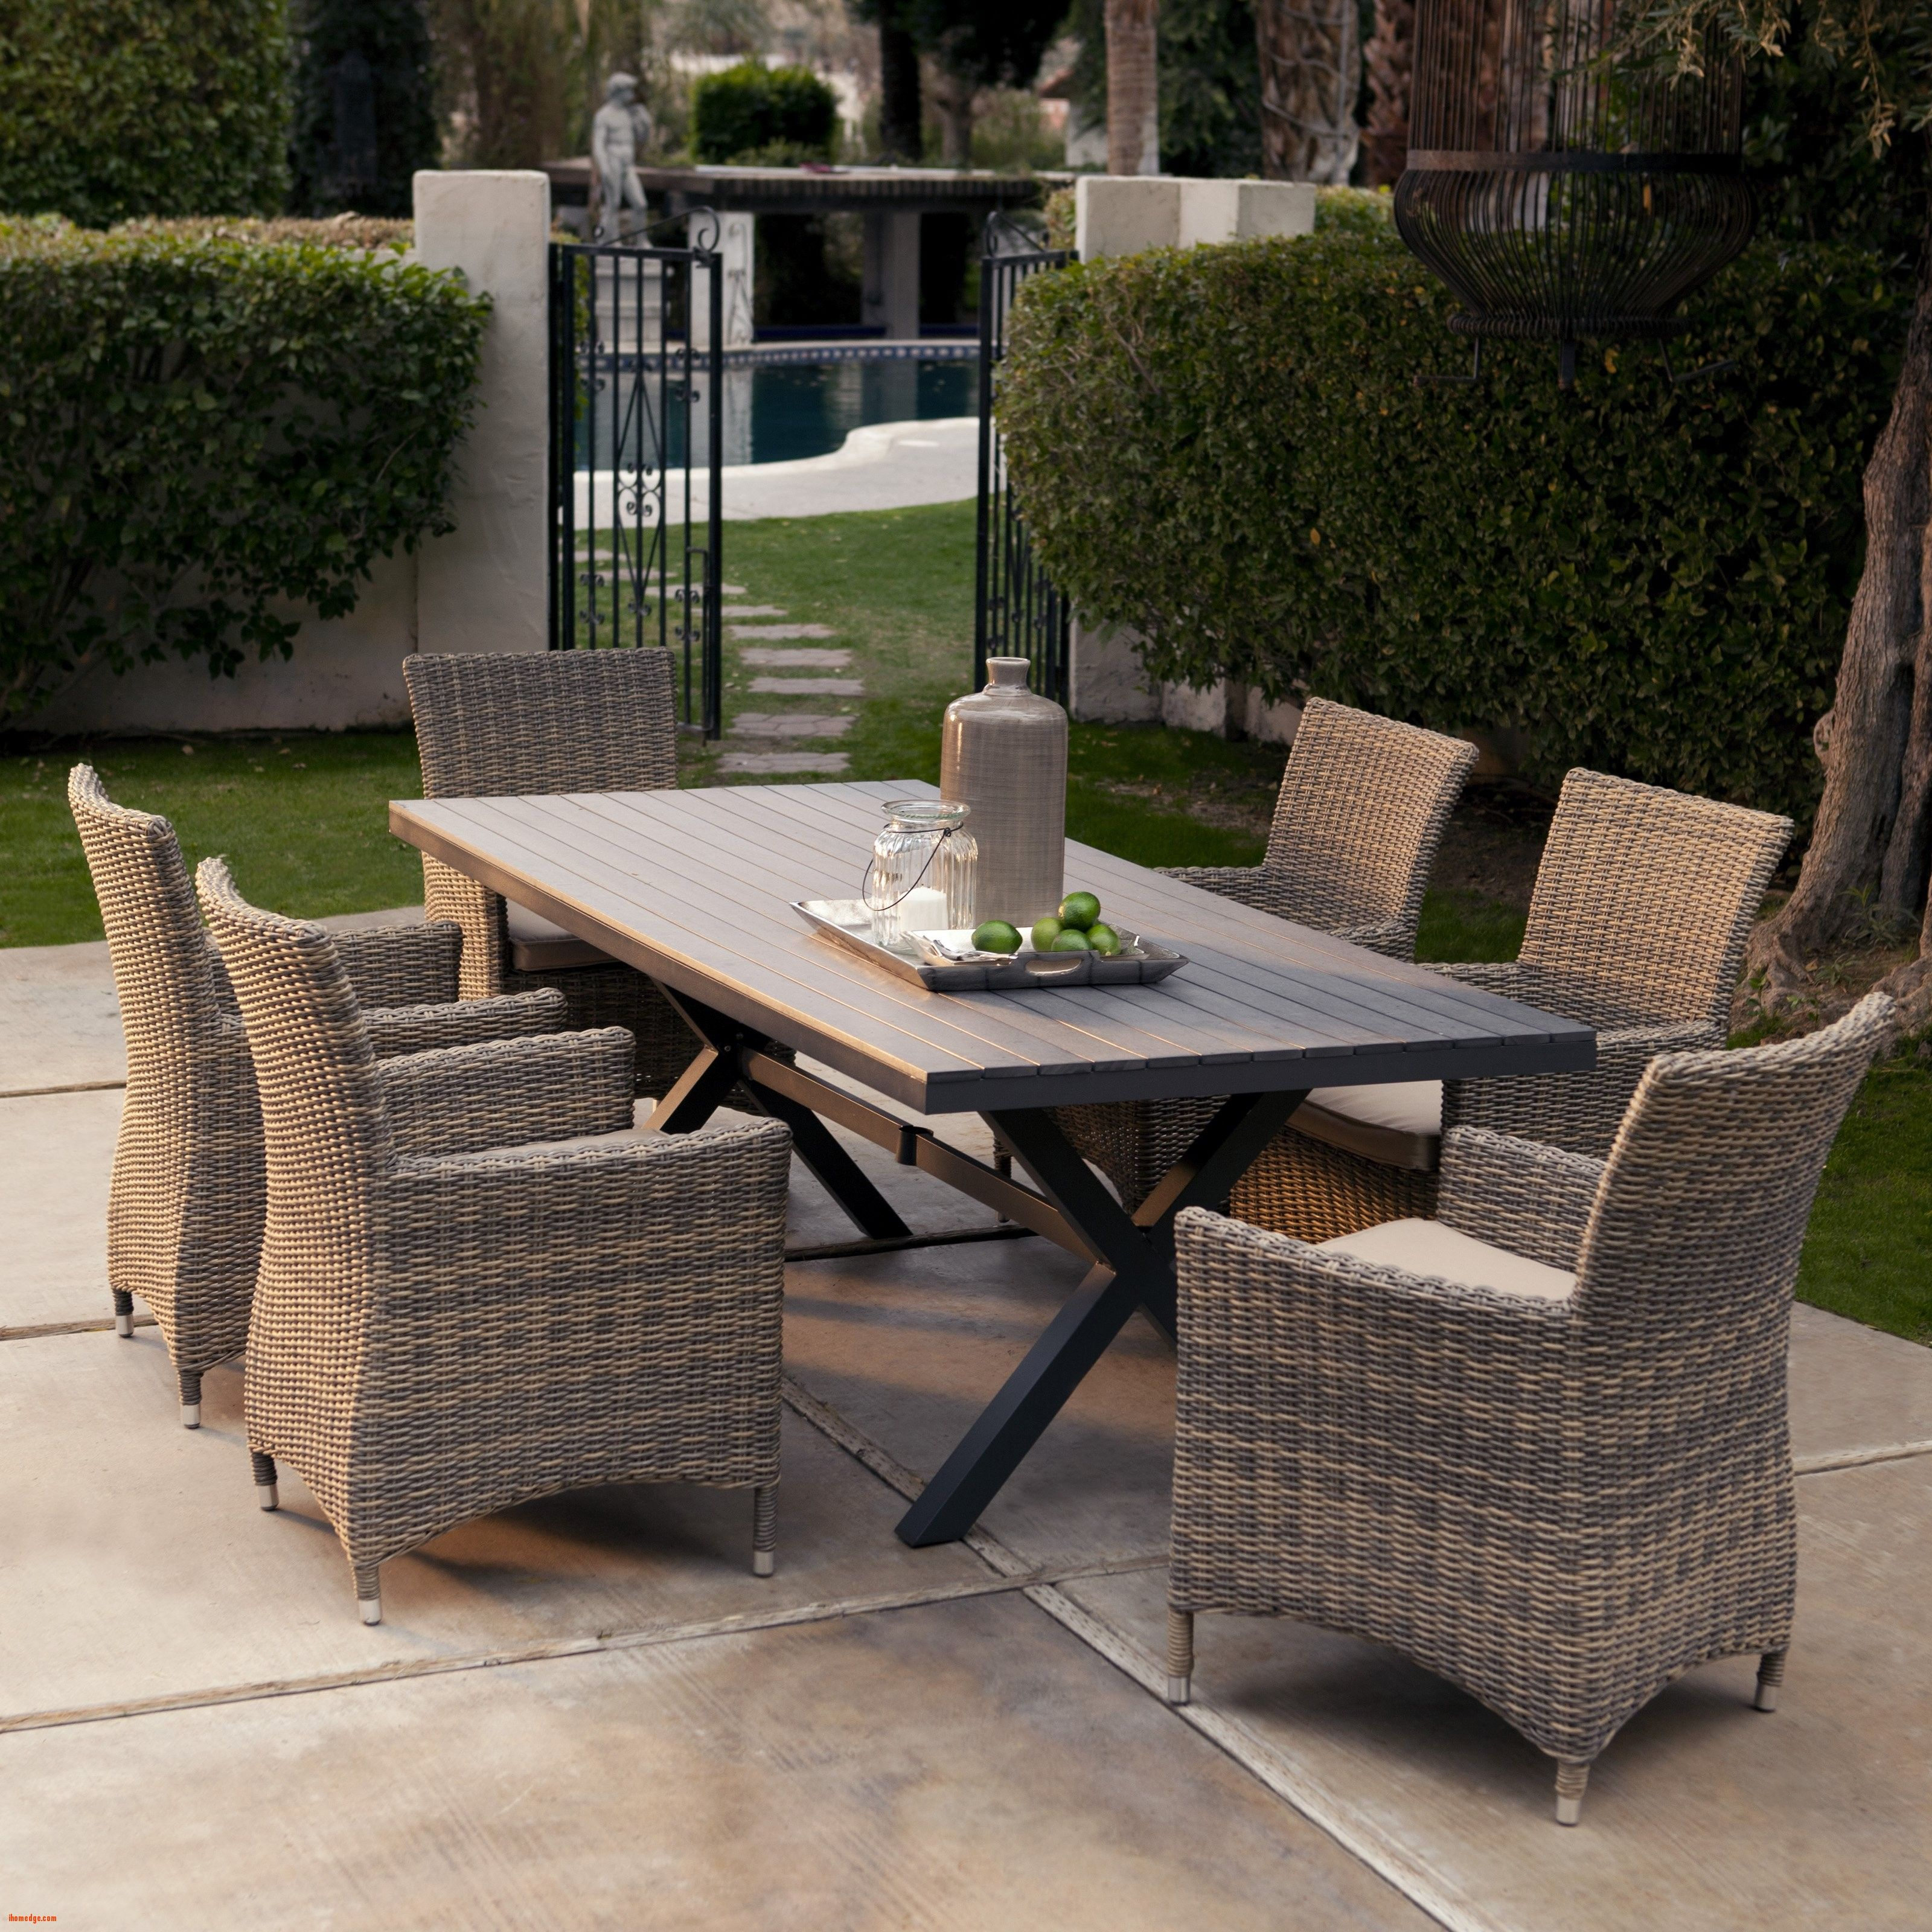 Good Awesome Patio Table And Chairs Set , Cool Patio Decorating Ideas  Pictures Decoration Ideas Furniture Cozy Resin Wicker Patio Furniture For  Patio ...